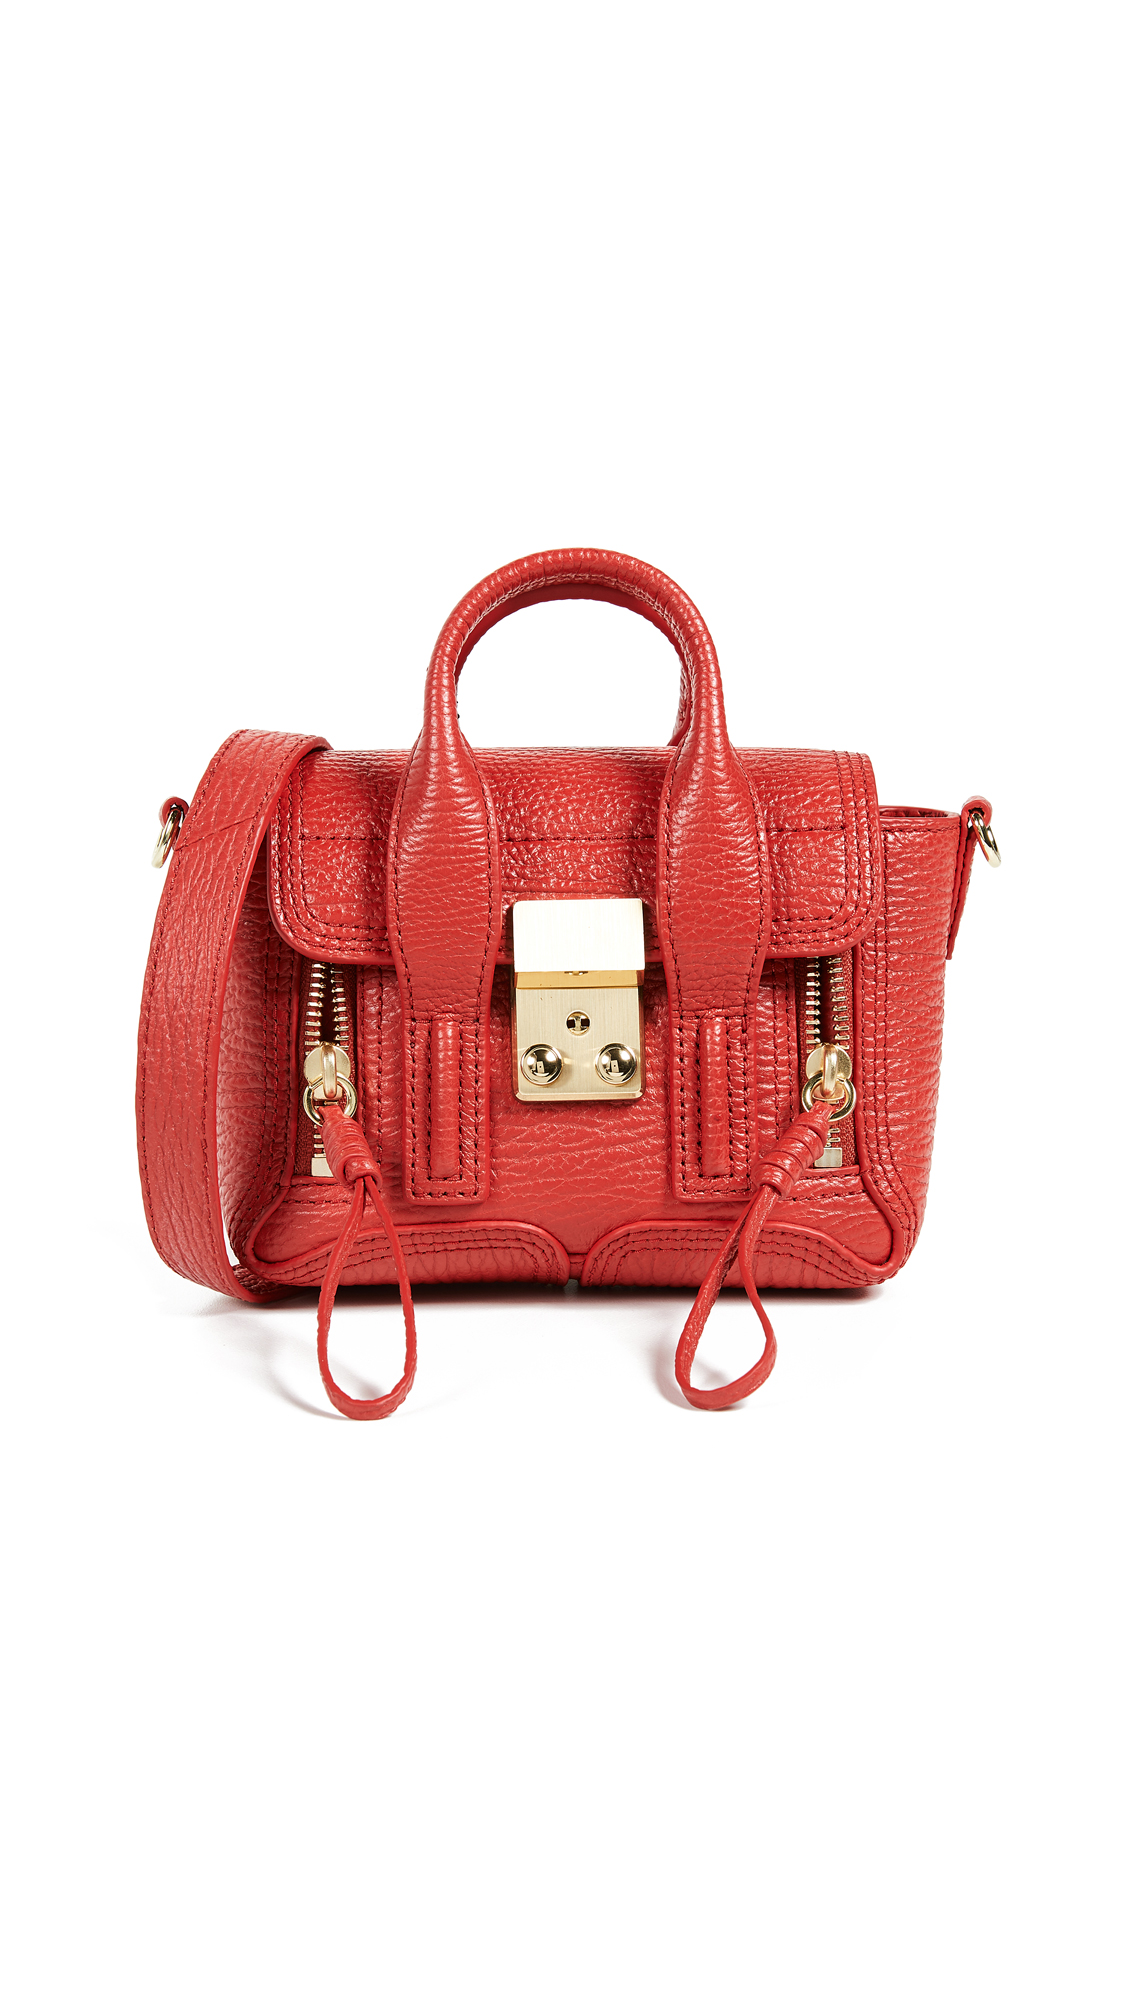 3.1 Phillip Lim Pashli Nano Satchel - Red